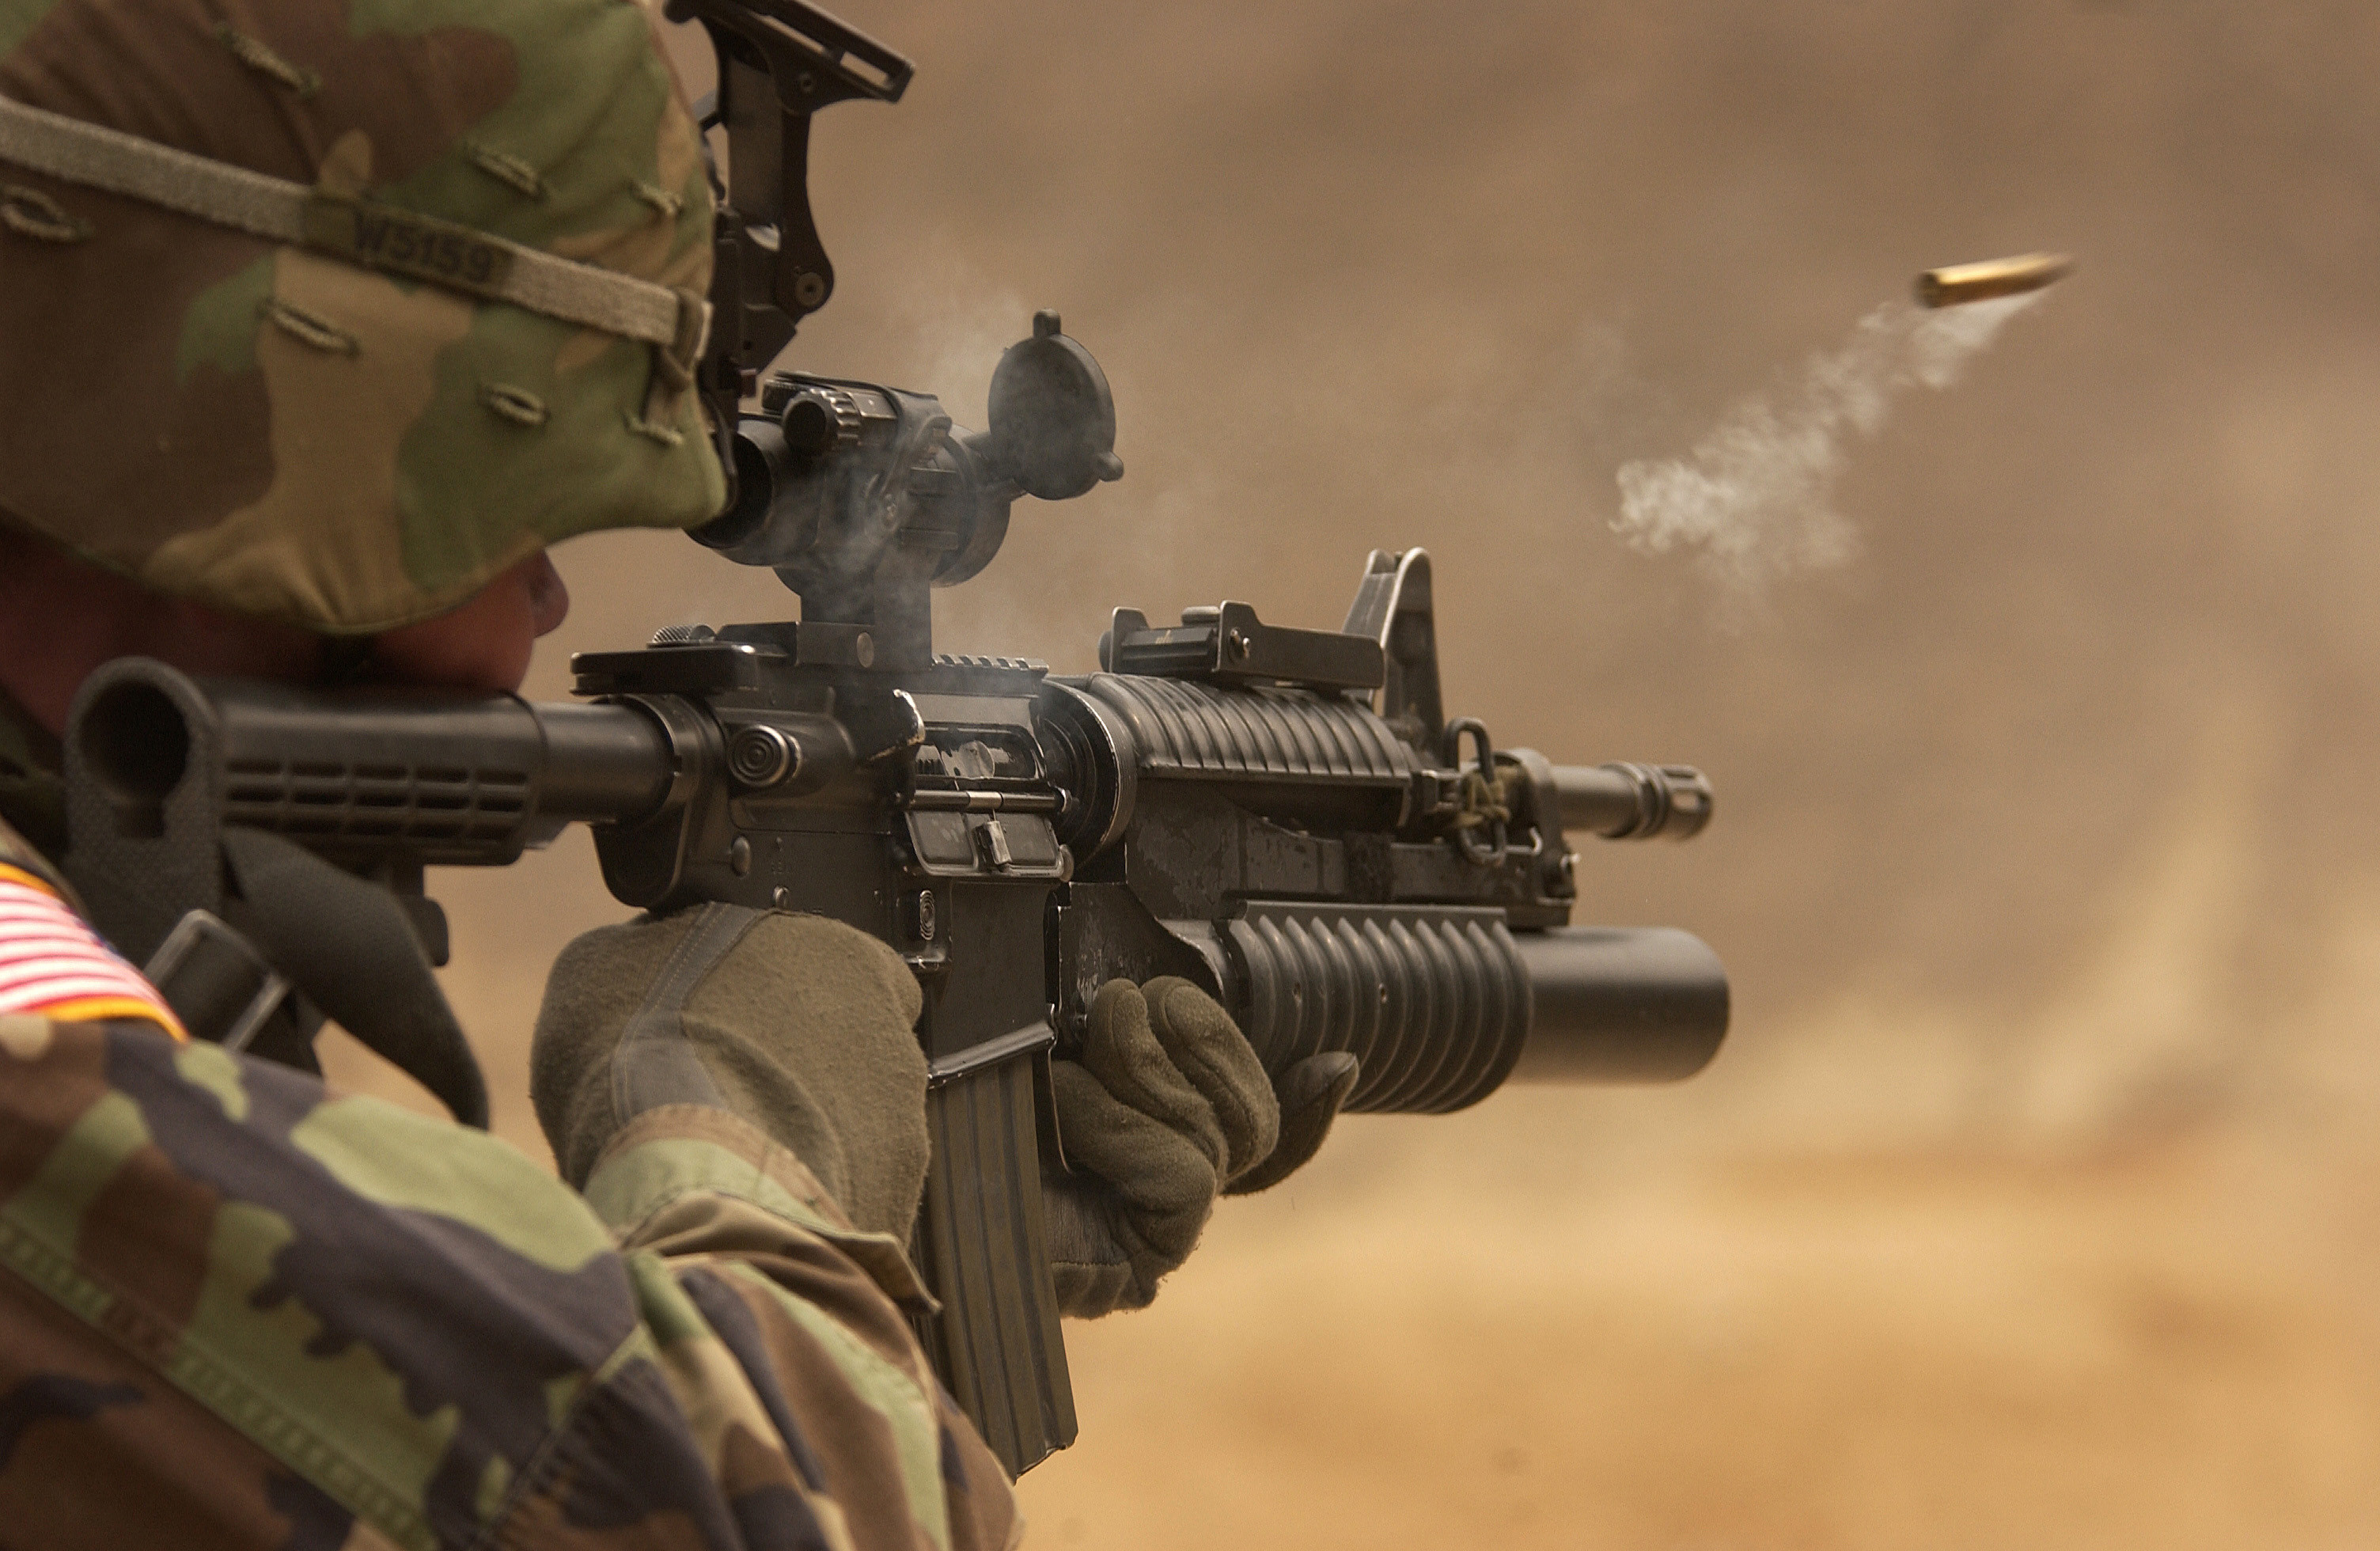 Res: 3008x1960, HD Wallpaper | Background Image ID:11385.  Military Soldier